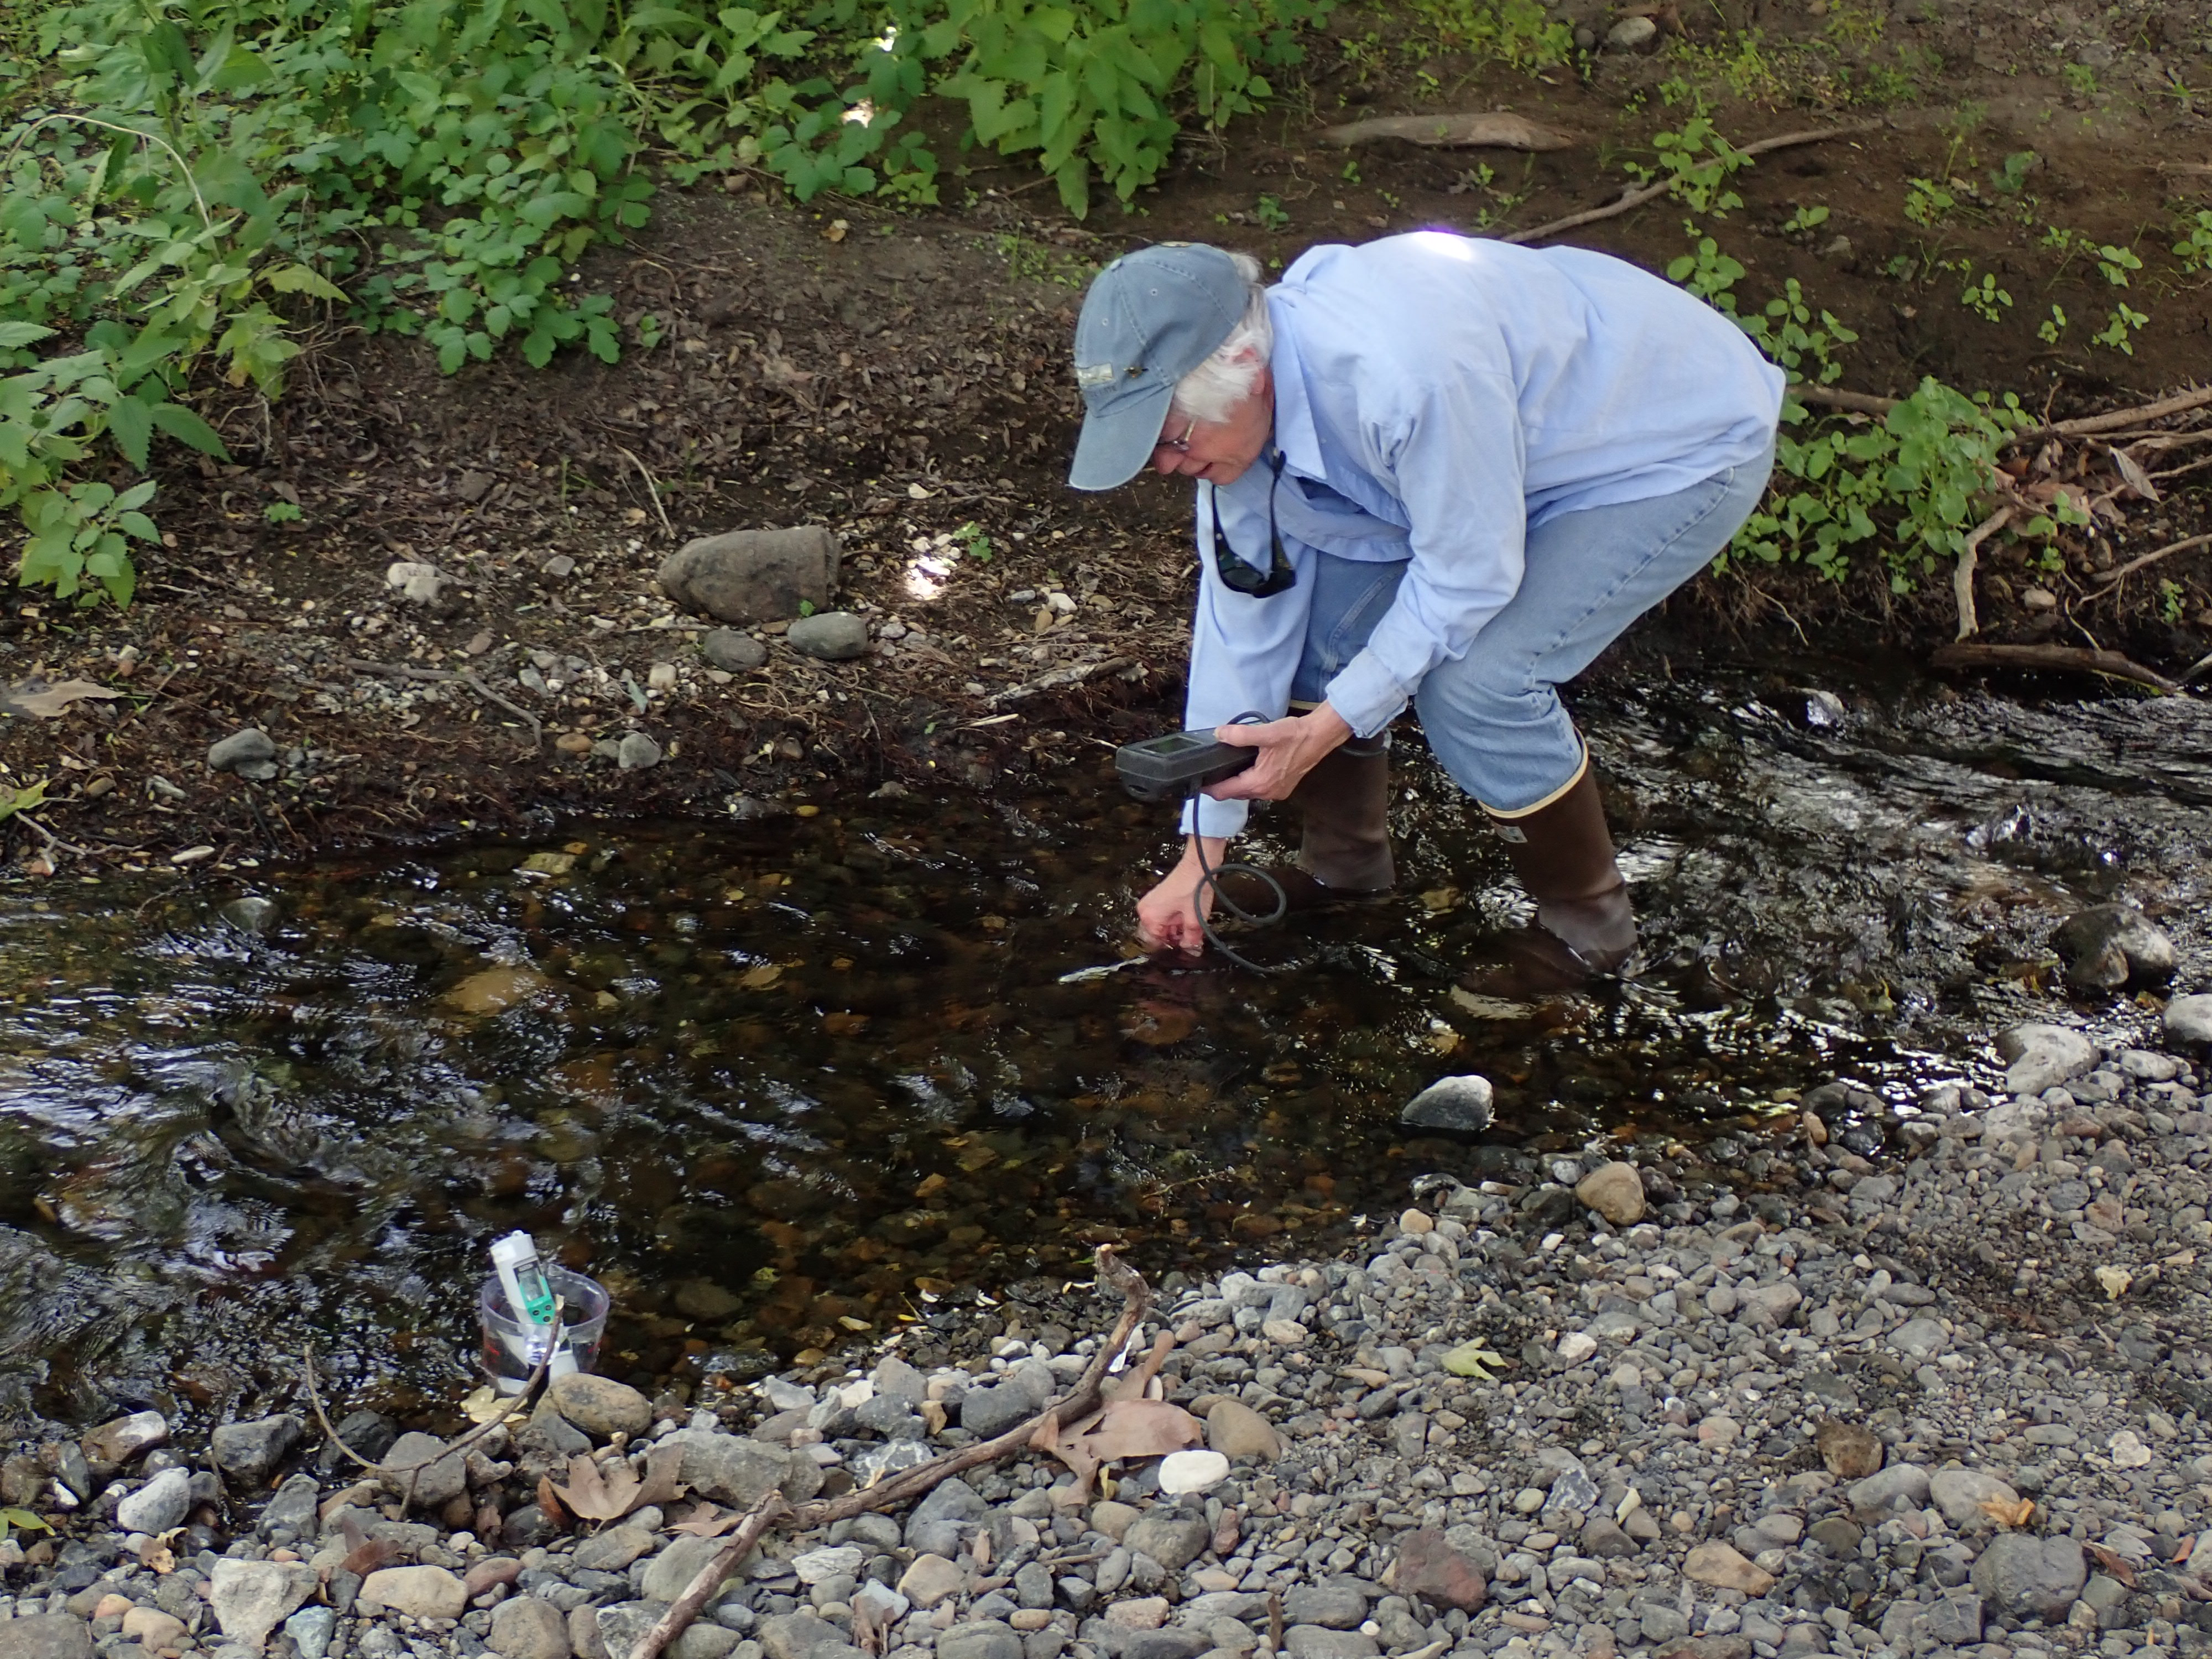 Shows a volunteer conducting water quality monitoring